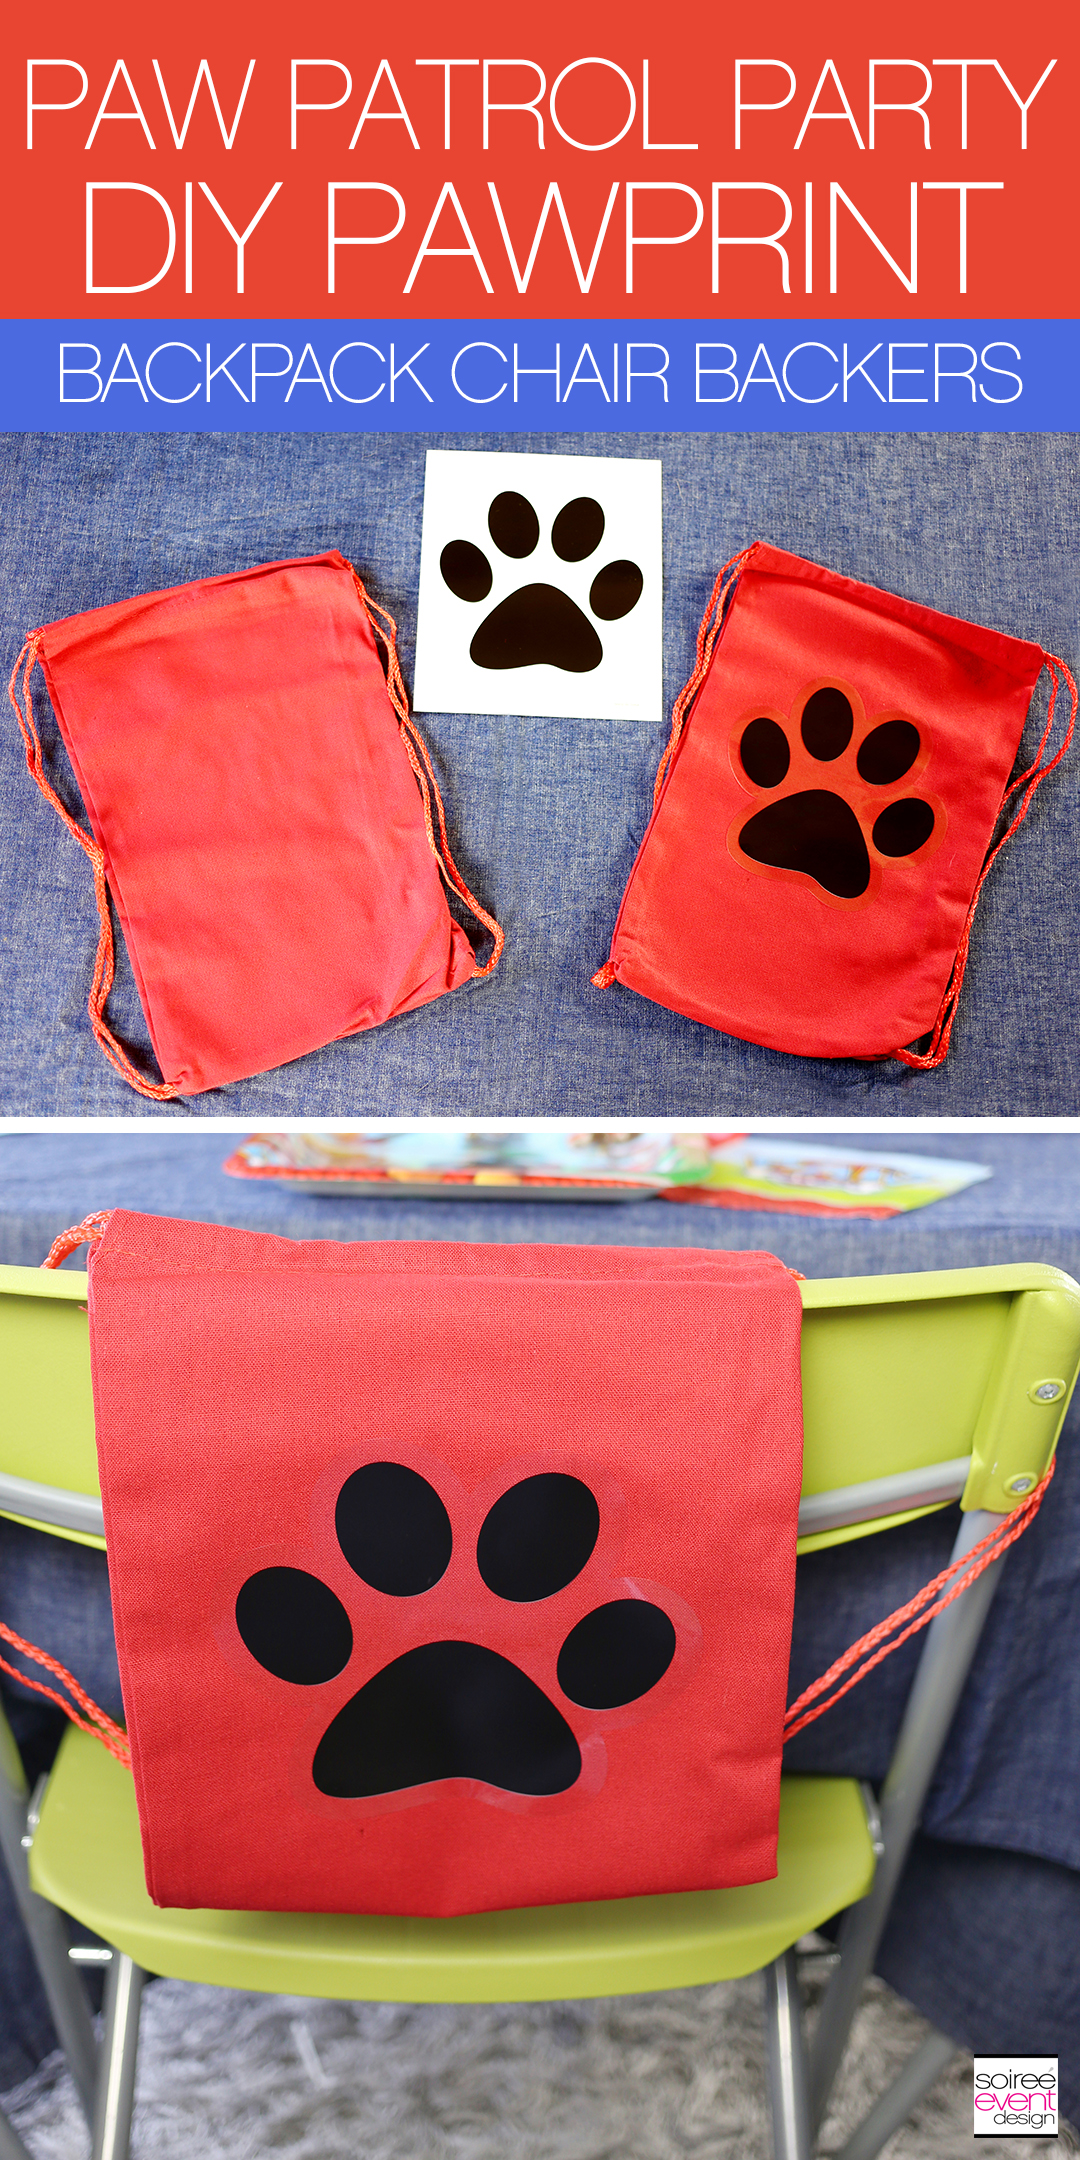 Paw Patrol Party - DIY Pawprint Backpacks